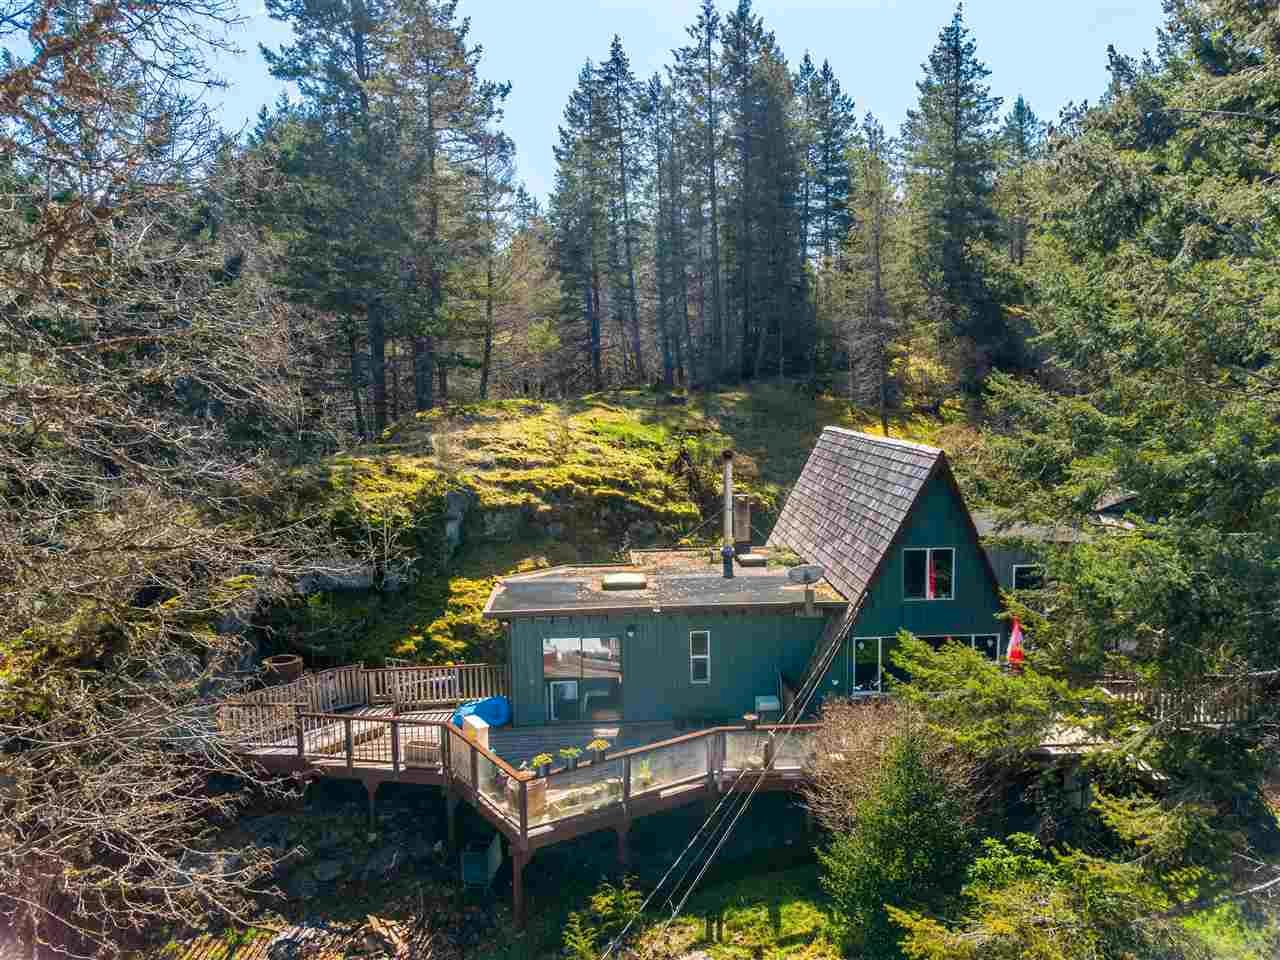 Main Photo: 4470 MCLINTOCK Road in Madeira Park: Pender Harbour Egmont House for sale (Sunshine Coast)  : MLS®# R2562240